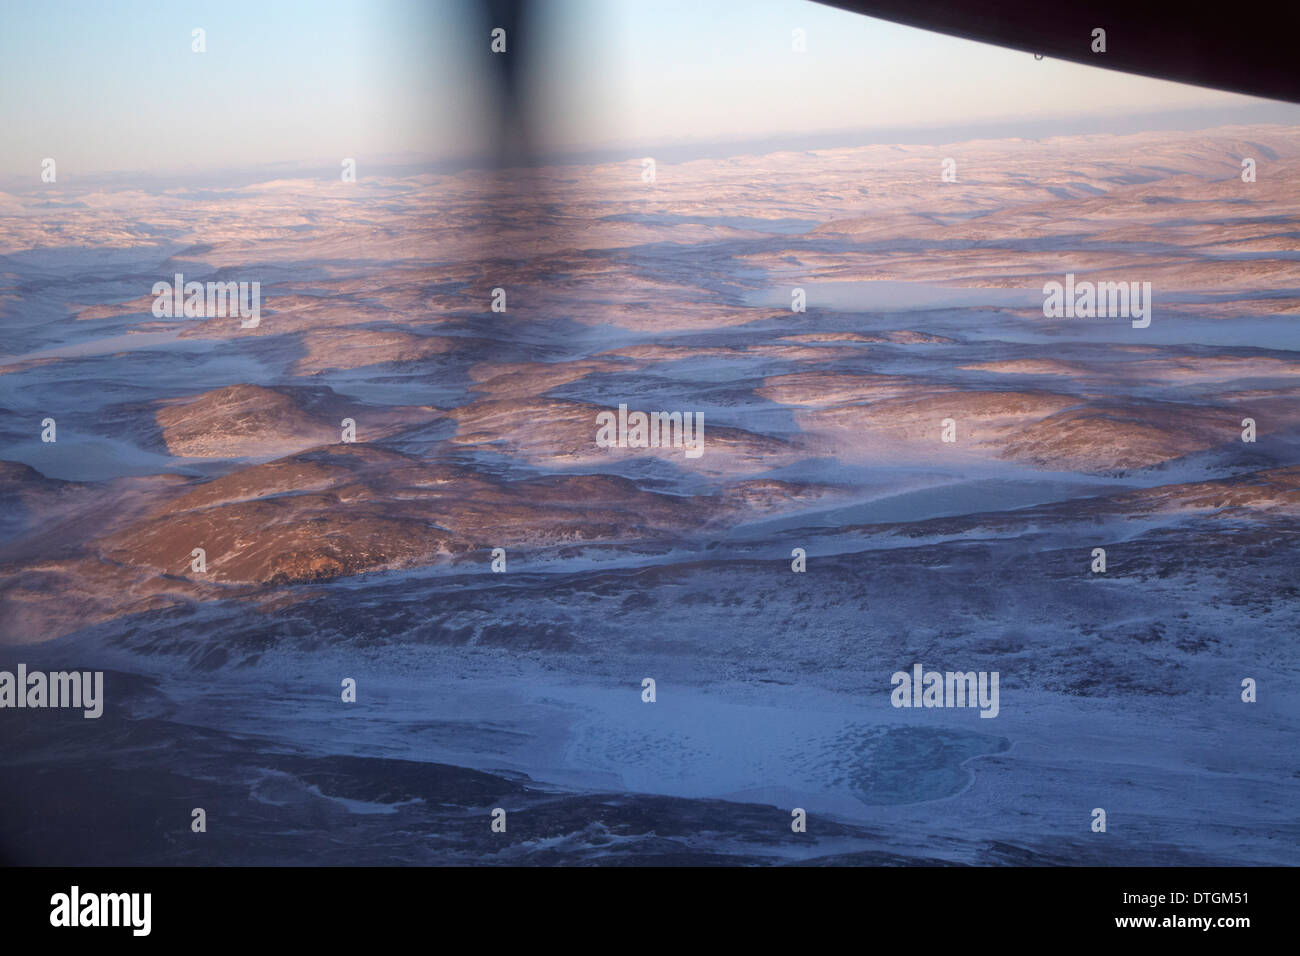 Greenland. View from an aircraft over Greenland's melting icebergs. - Stock Image